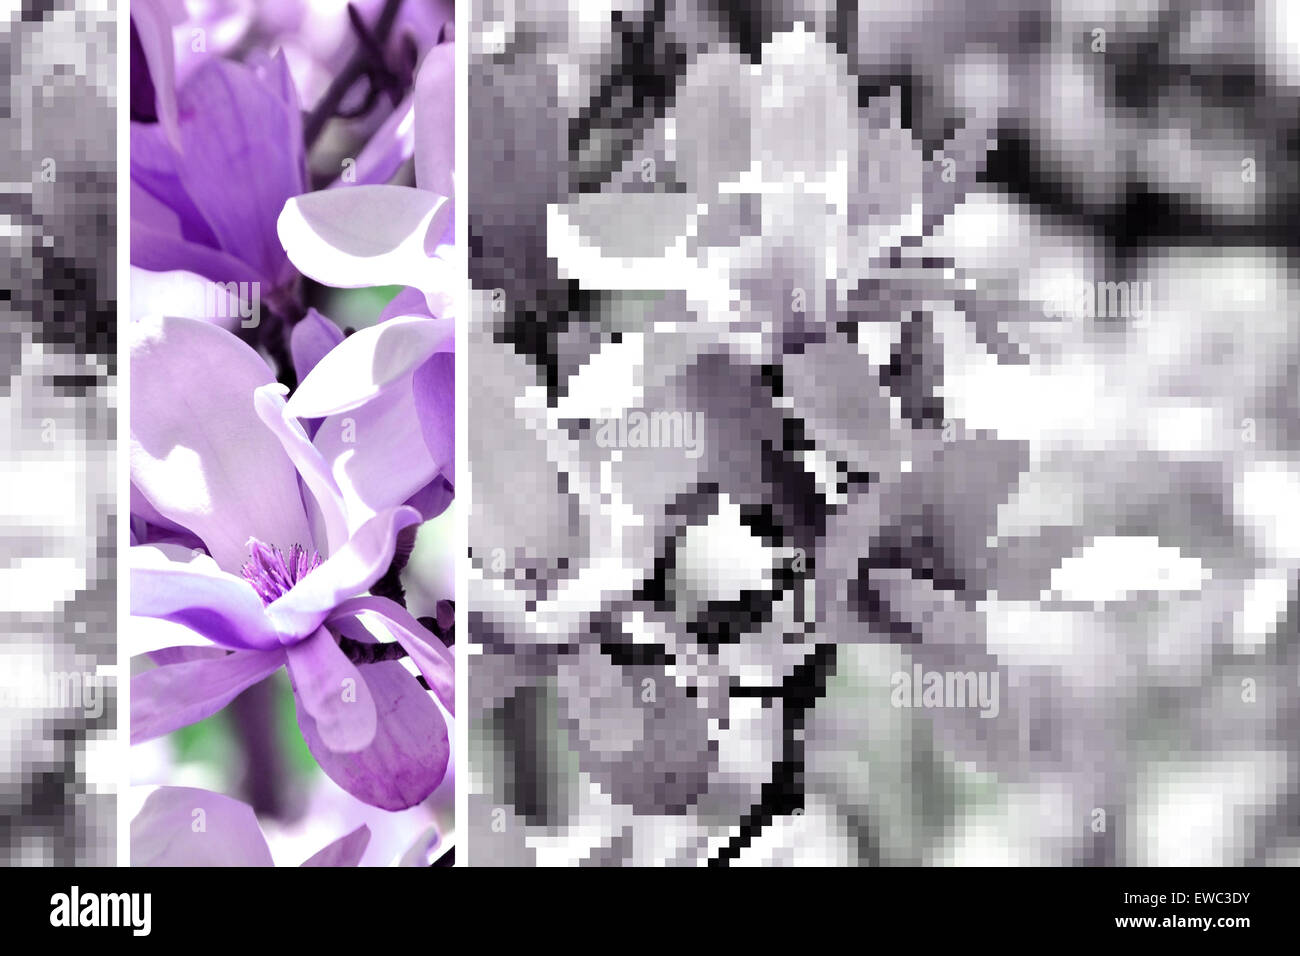 flowers-with-violet-and-pixelated-effect